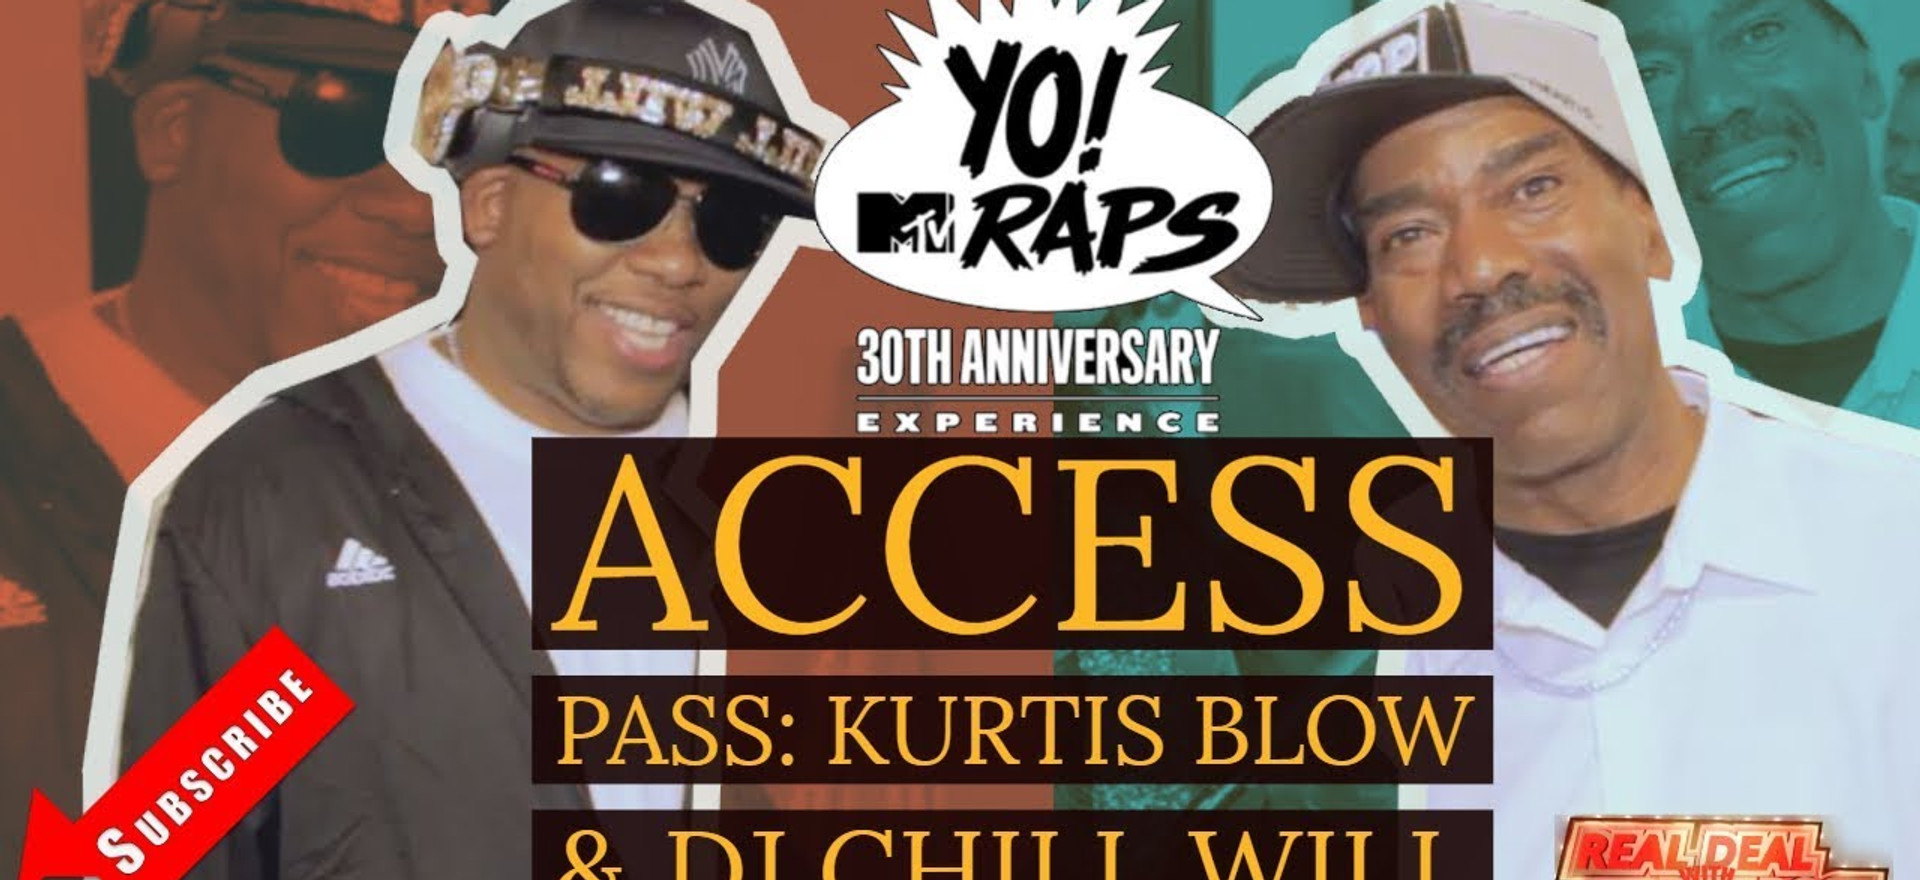 Take a look at Part 2 of the Real Deal with Reel Rose Access Pass with Flavor Flav and Luis Guzman at the Yo! MTV Raps 30th Anniversary concert at the Barclays Center in Brooklyn, New York